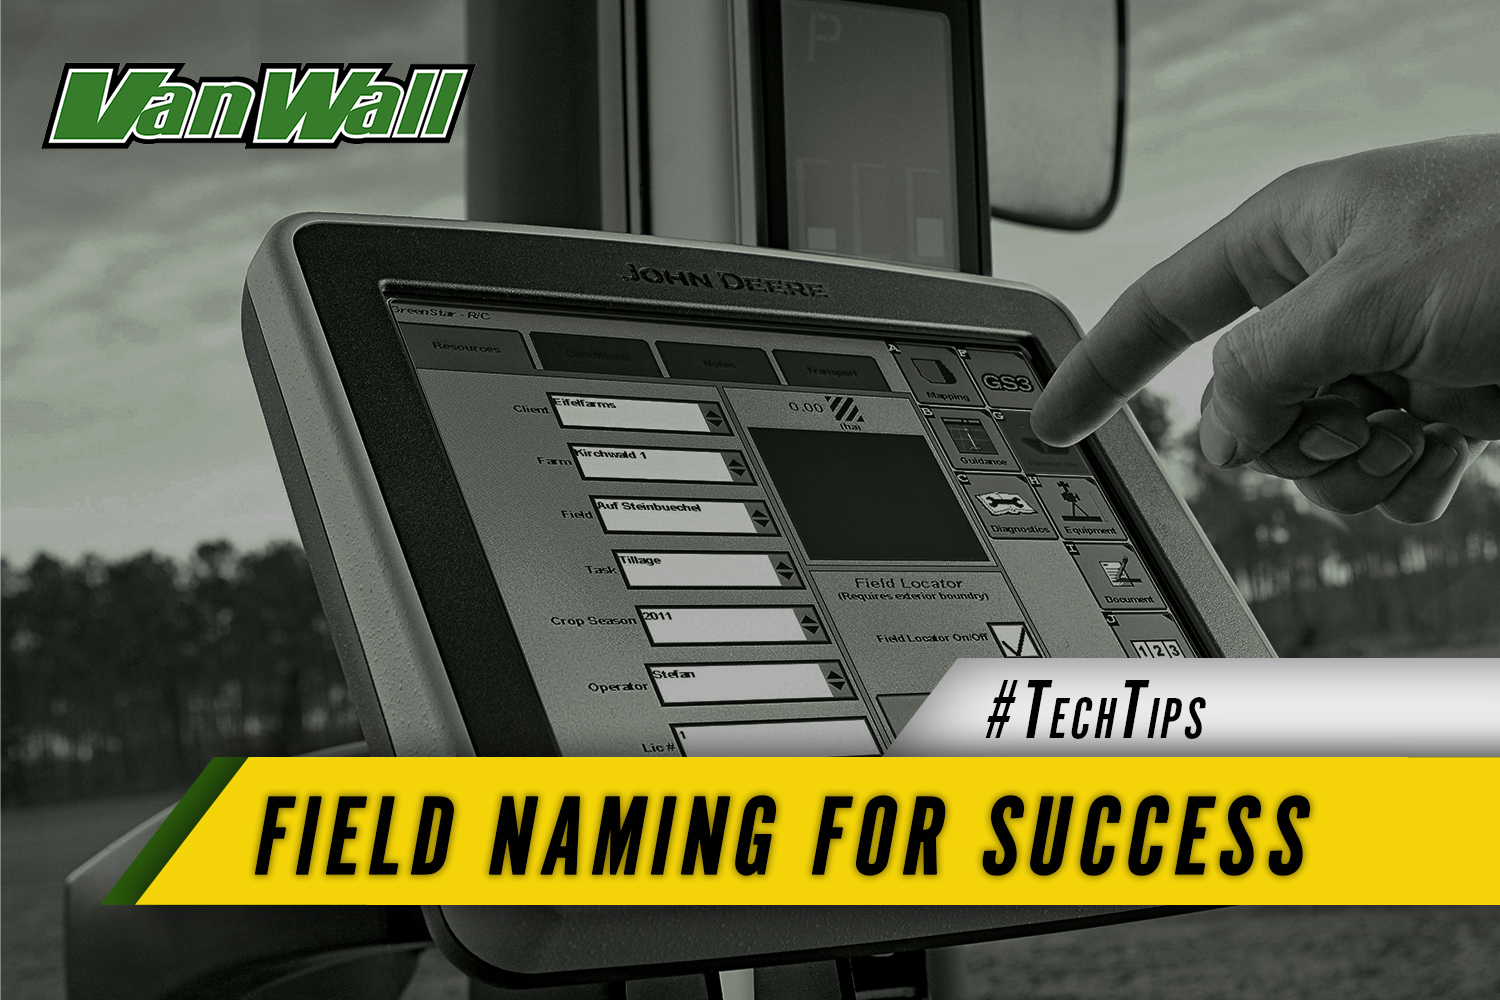 Field Naming for Success